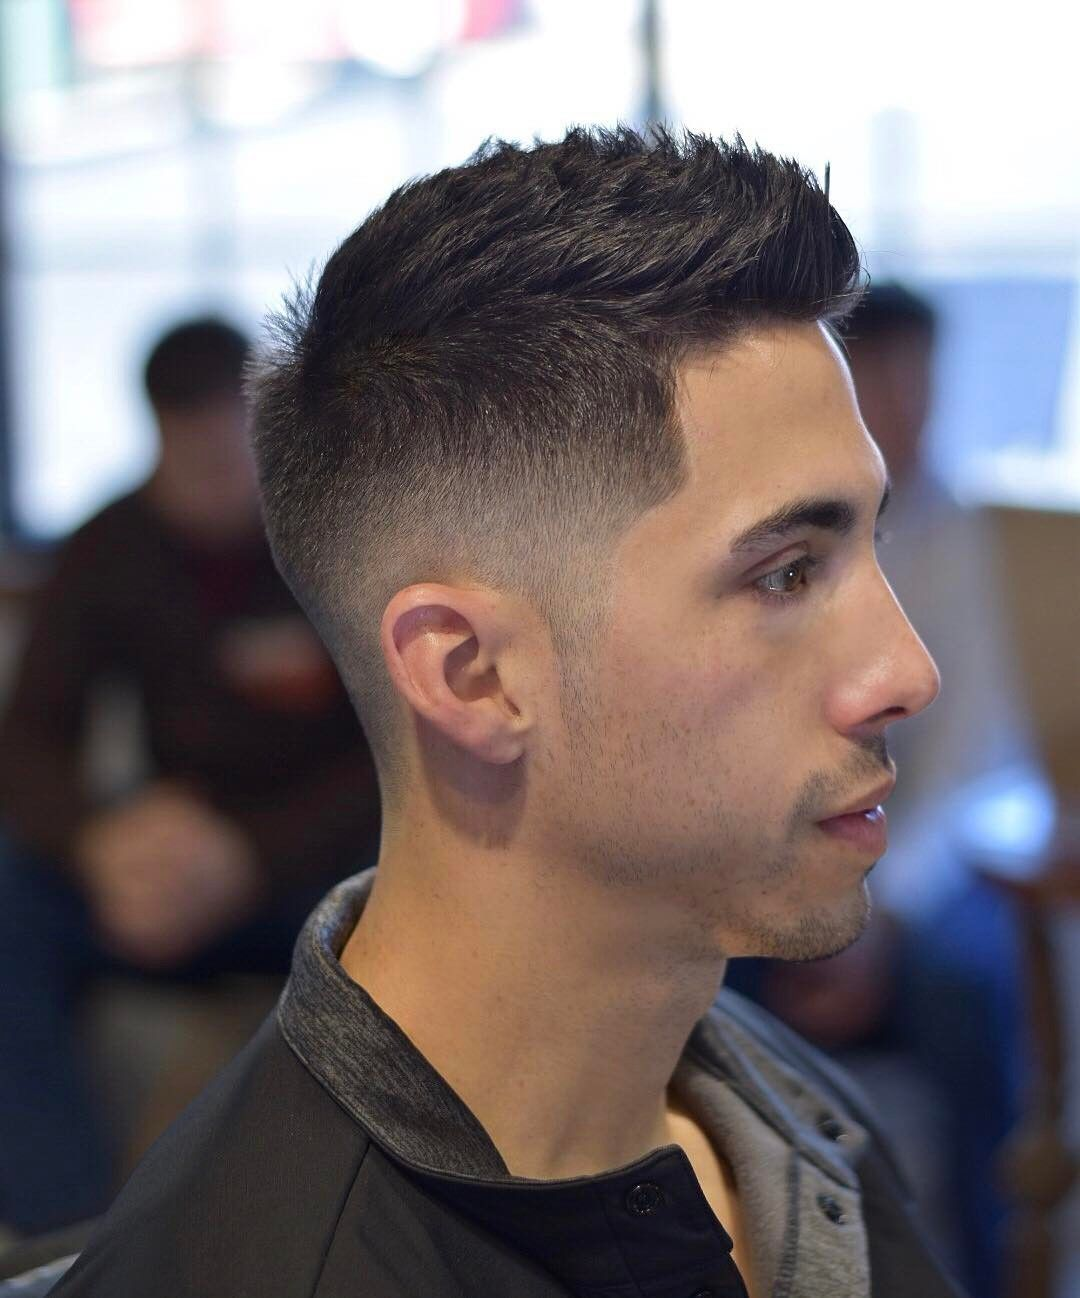 10+ best military haircut styles for guys tags: military